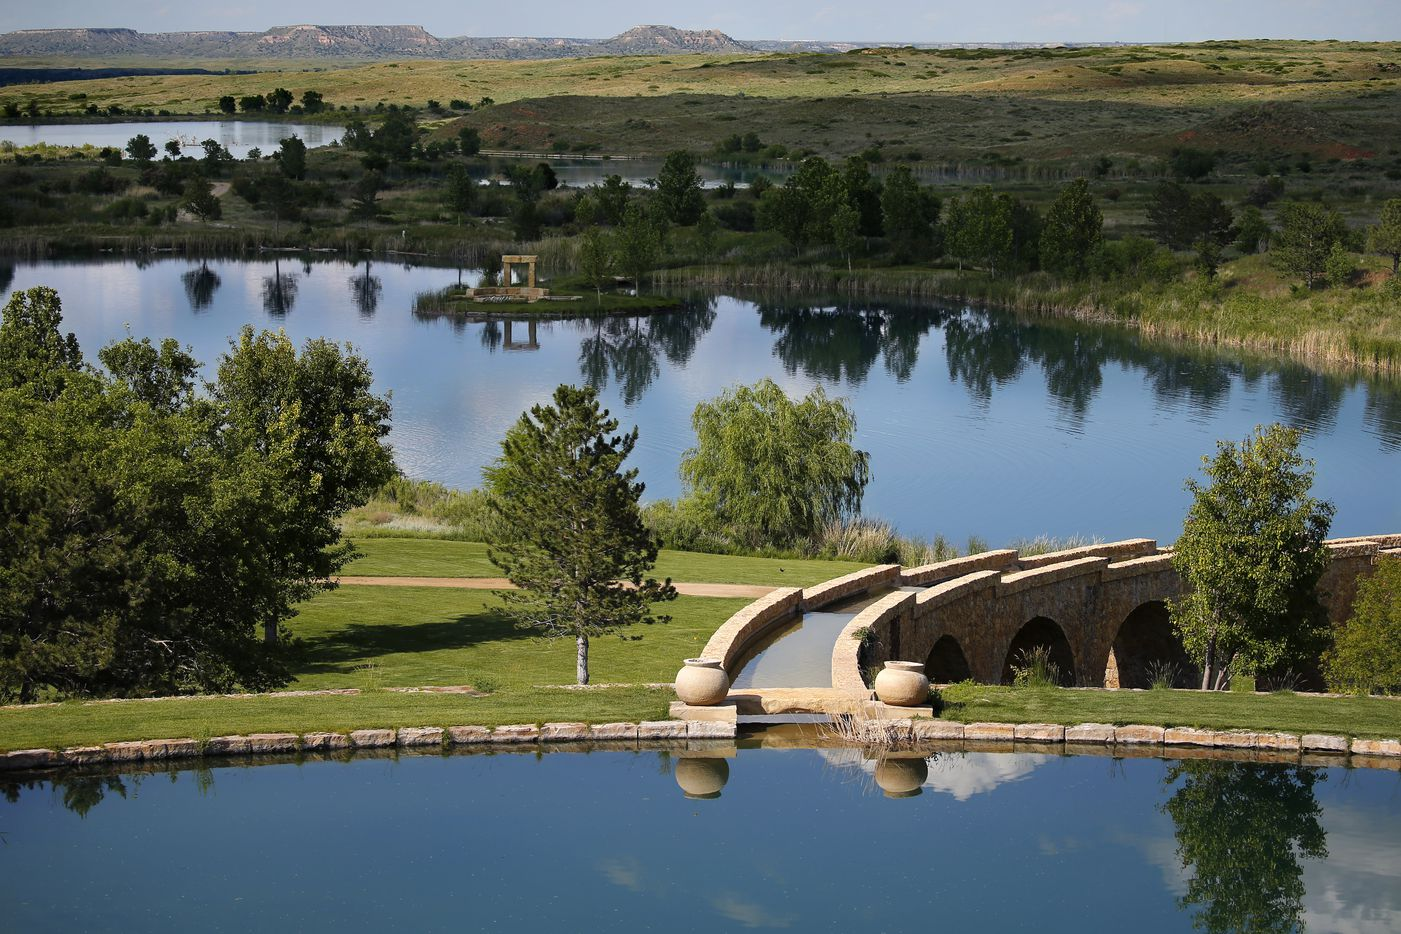 An aqueduct leads from one man-made lake to the next.  The series of lakes, fed by the Ogallala Aquifer, runs through the 68,000-acre Mesa Vista Ranch.